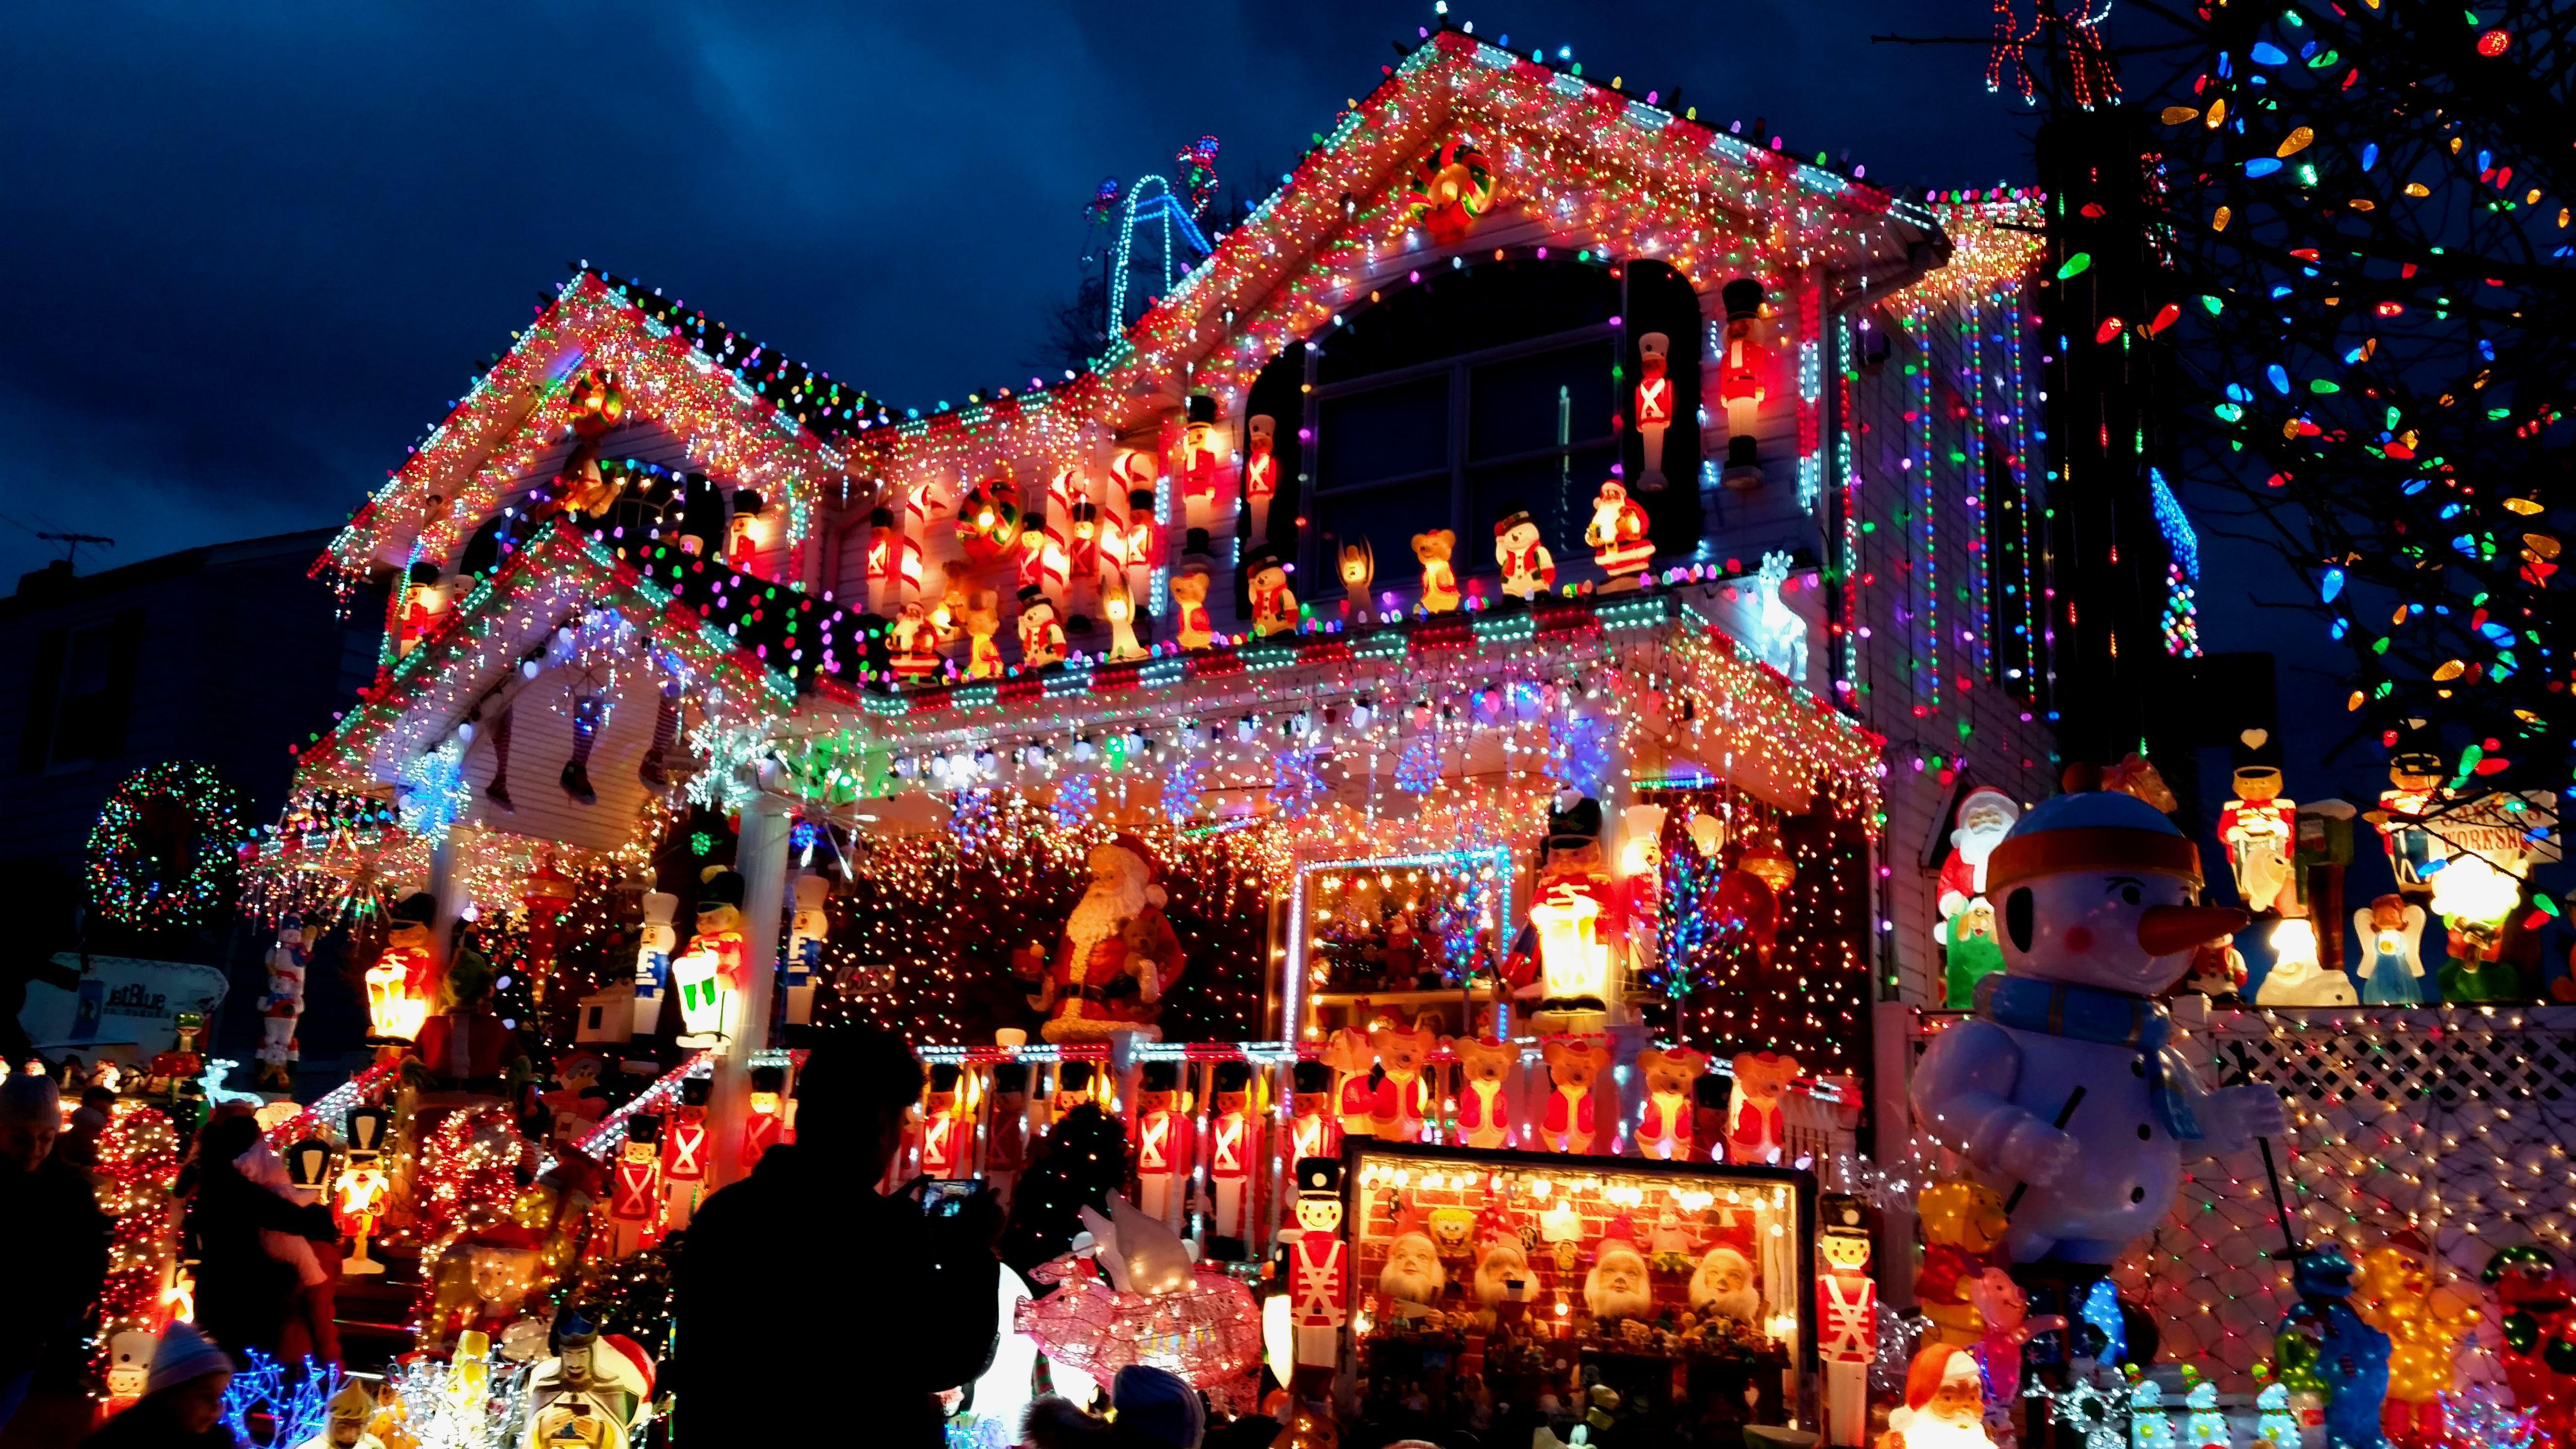 Lights Out, What's Up with Light Displays? - The Unfit Father